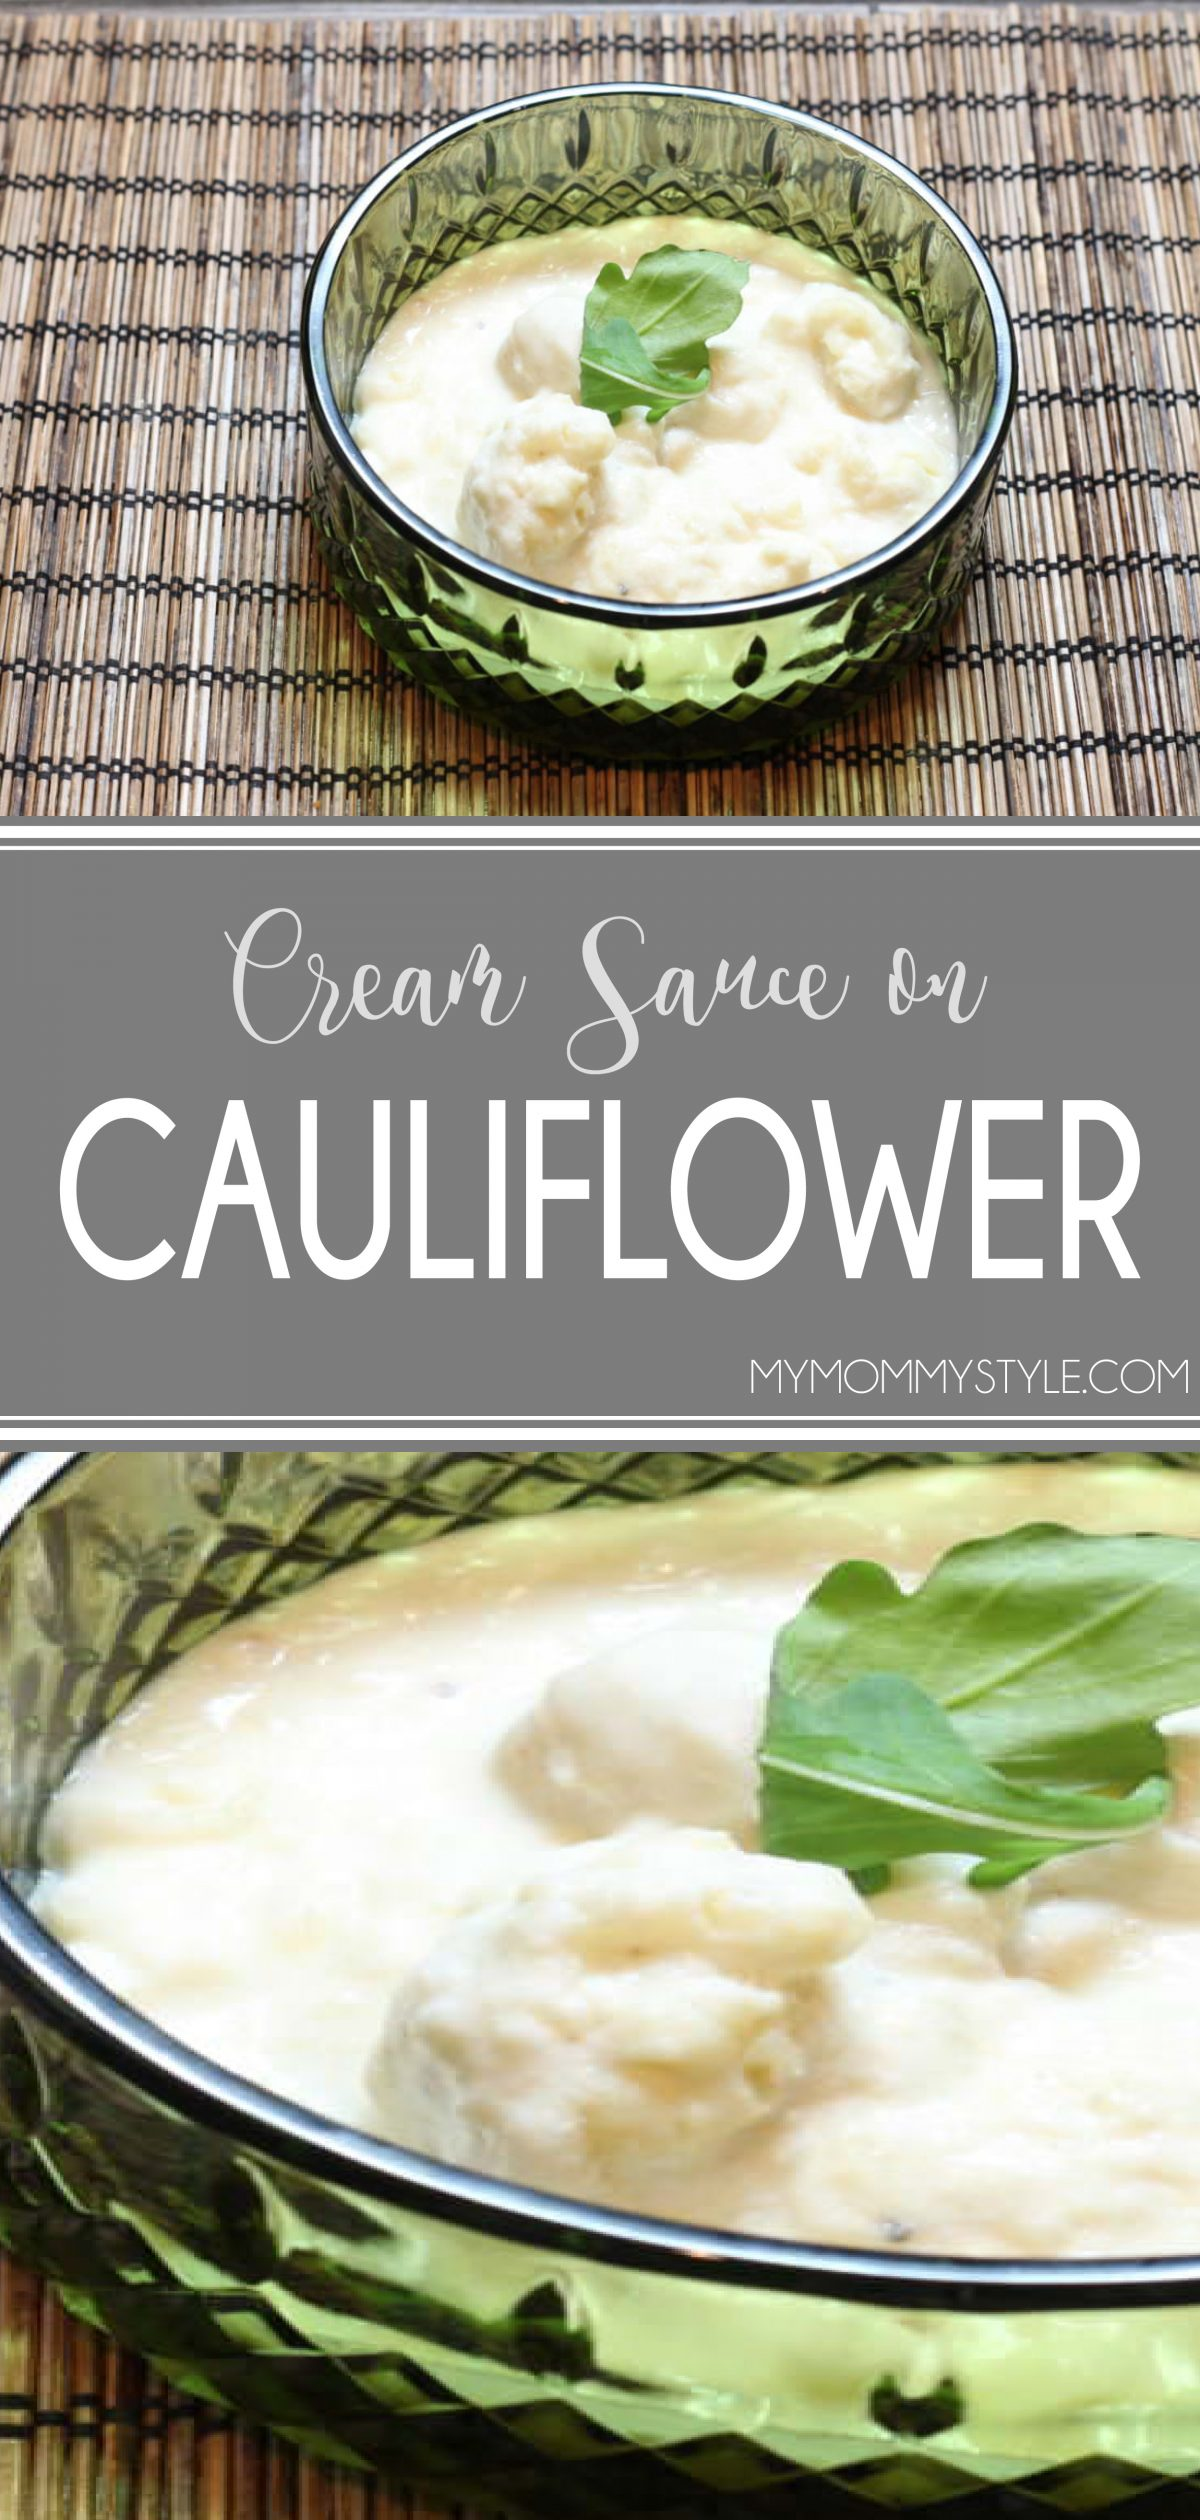 Dress up your next side dish with this Cauliflower Cream Sauce. It's smooth creaminess is perfect to serve with your veggies and holiday meals. #cauliflowercreamsauce #smoothcauliflower #creamsauce via @mymommystyle